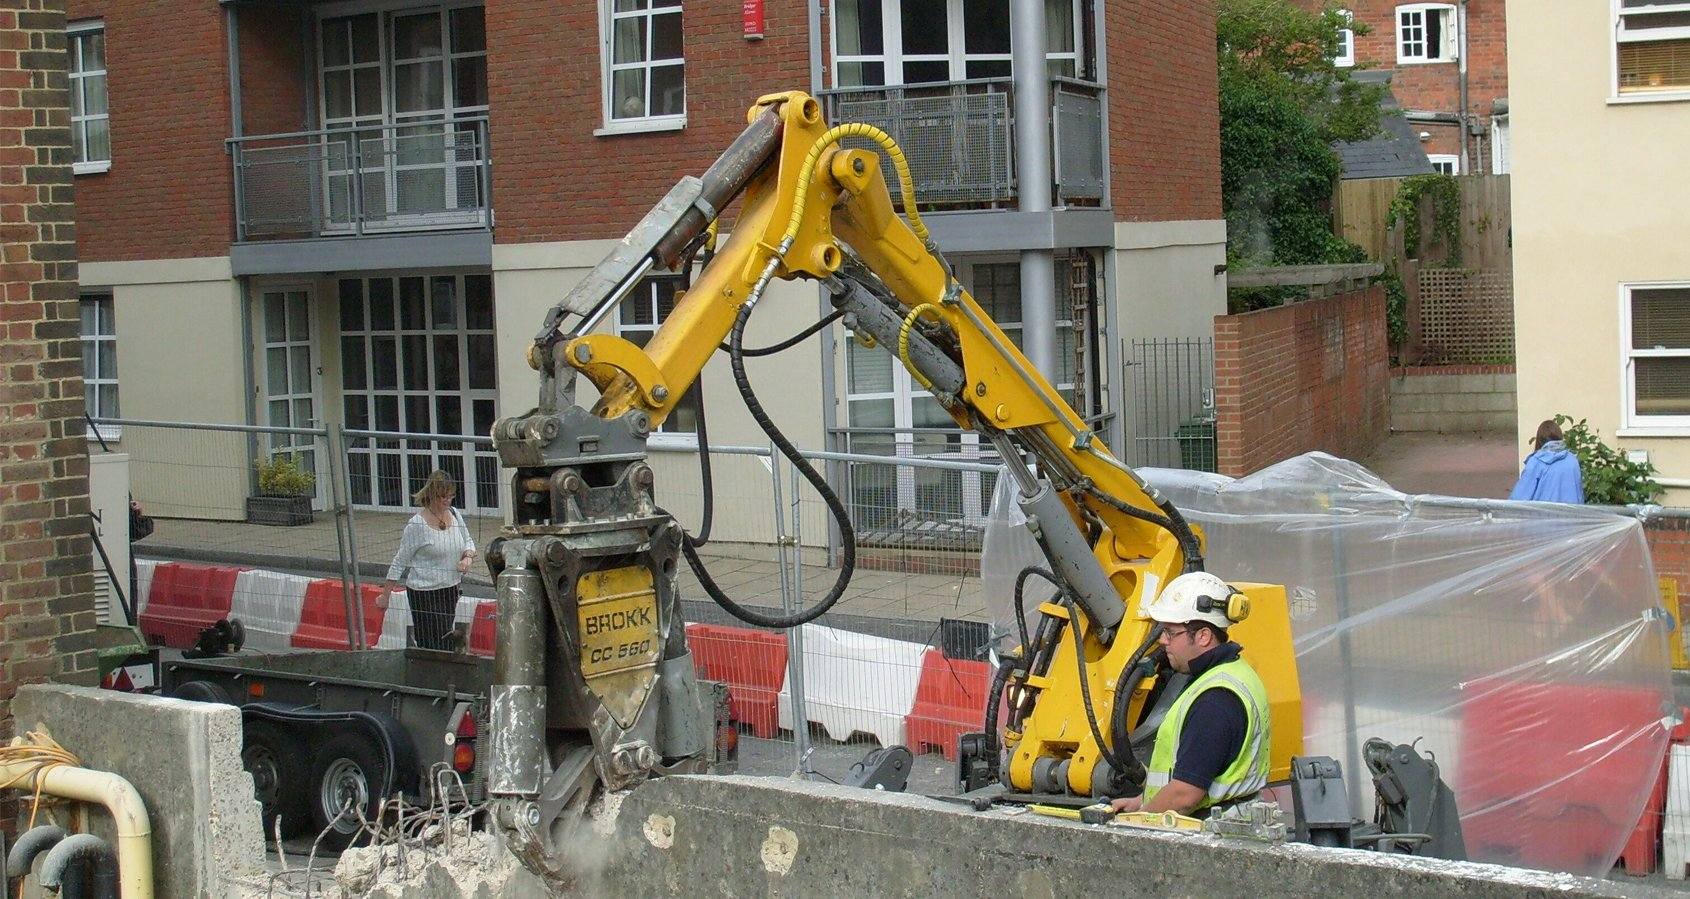 Robotic Demolition In Action